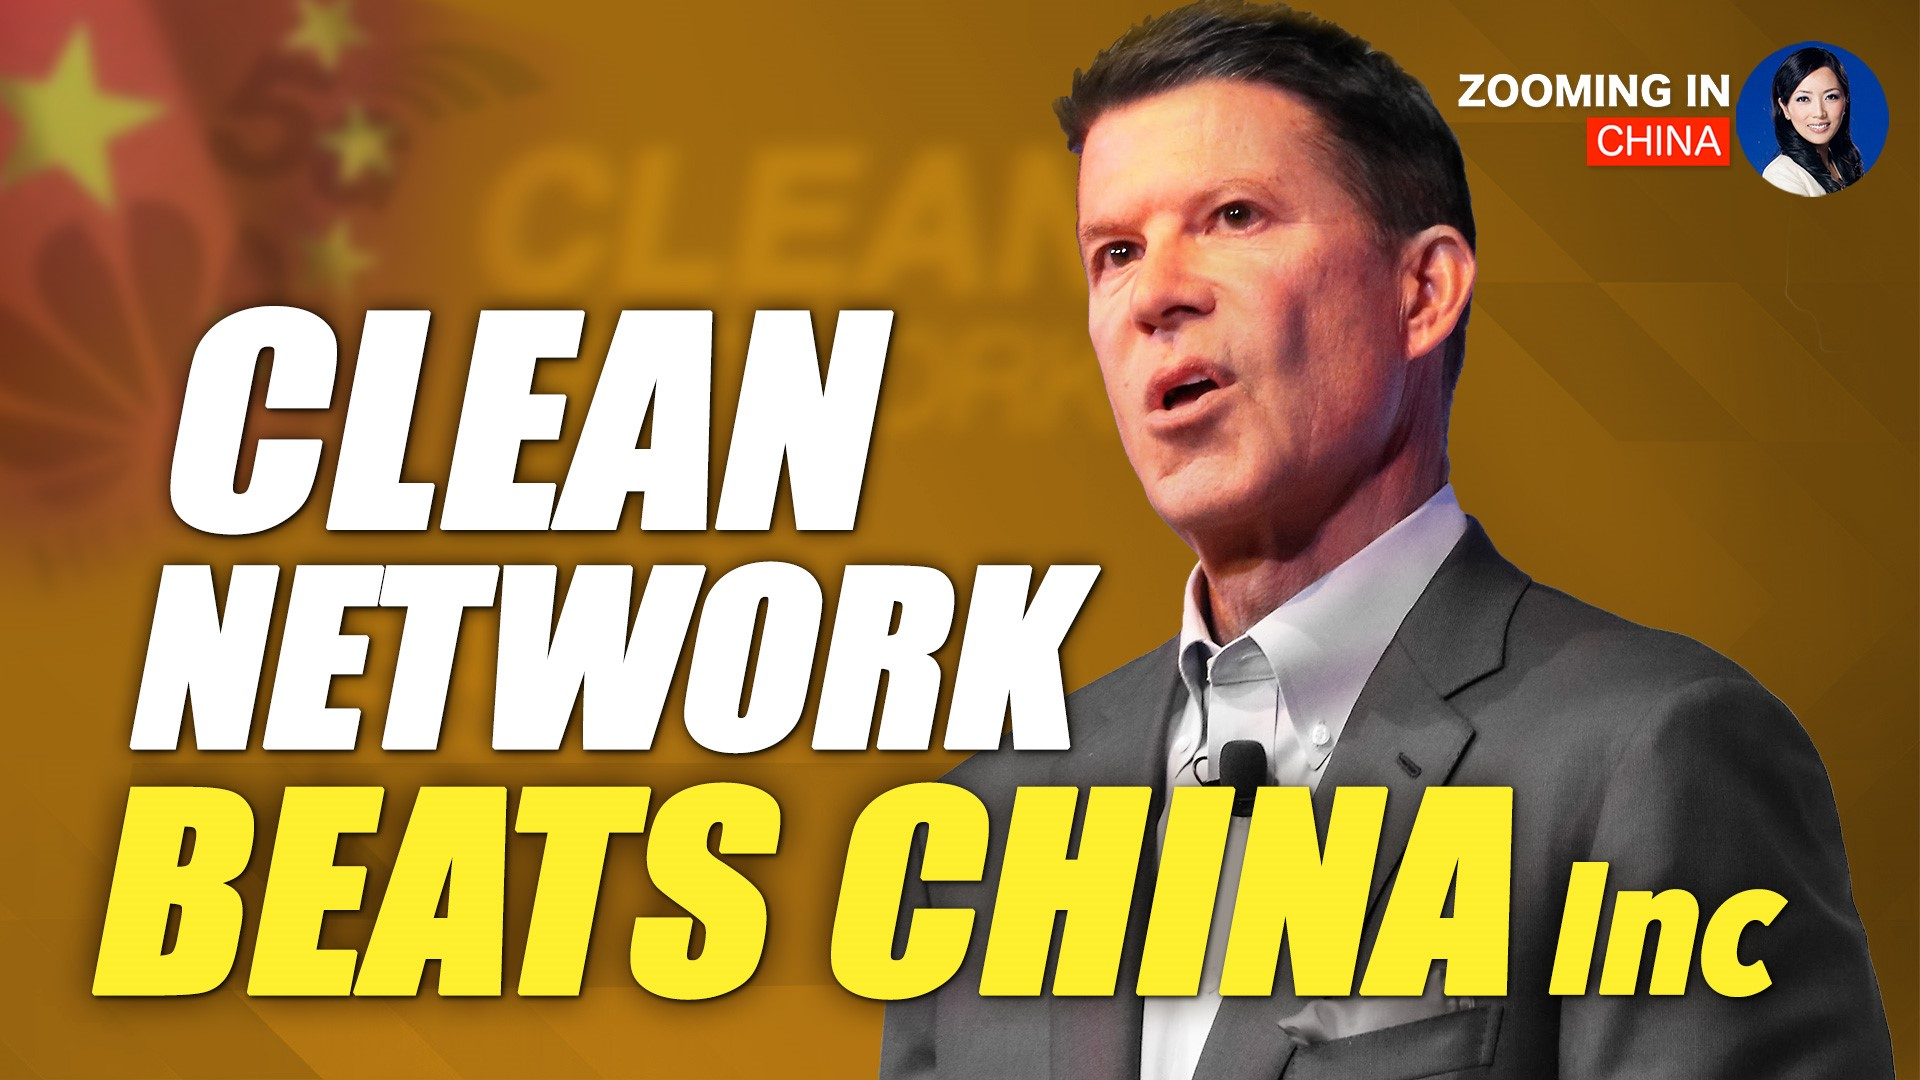 Documentary: The American Dream Takes On China Inc. Part Two: The Clean Network | Zooming In China